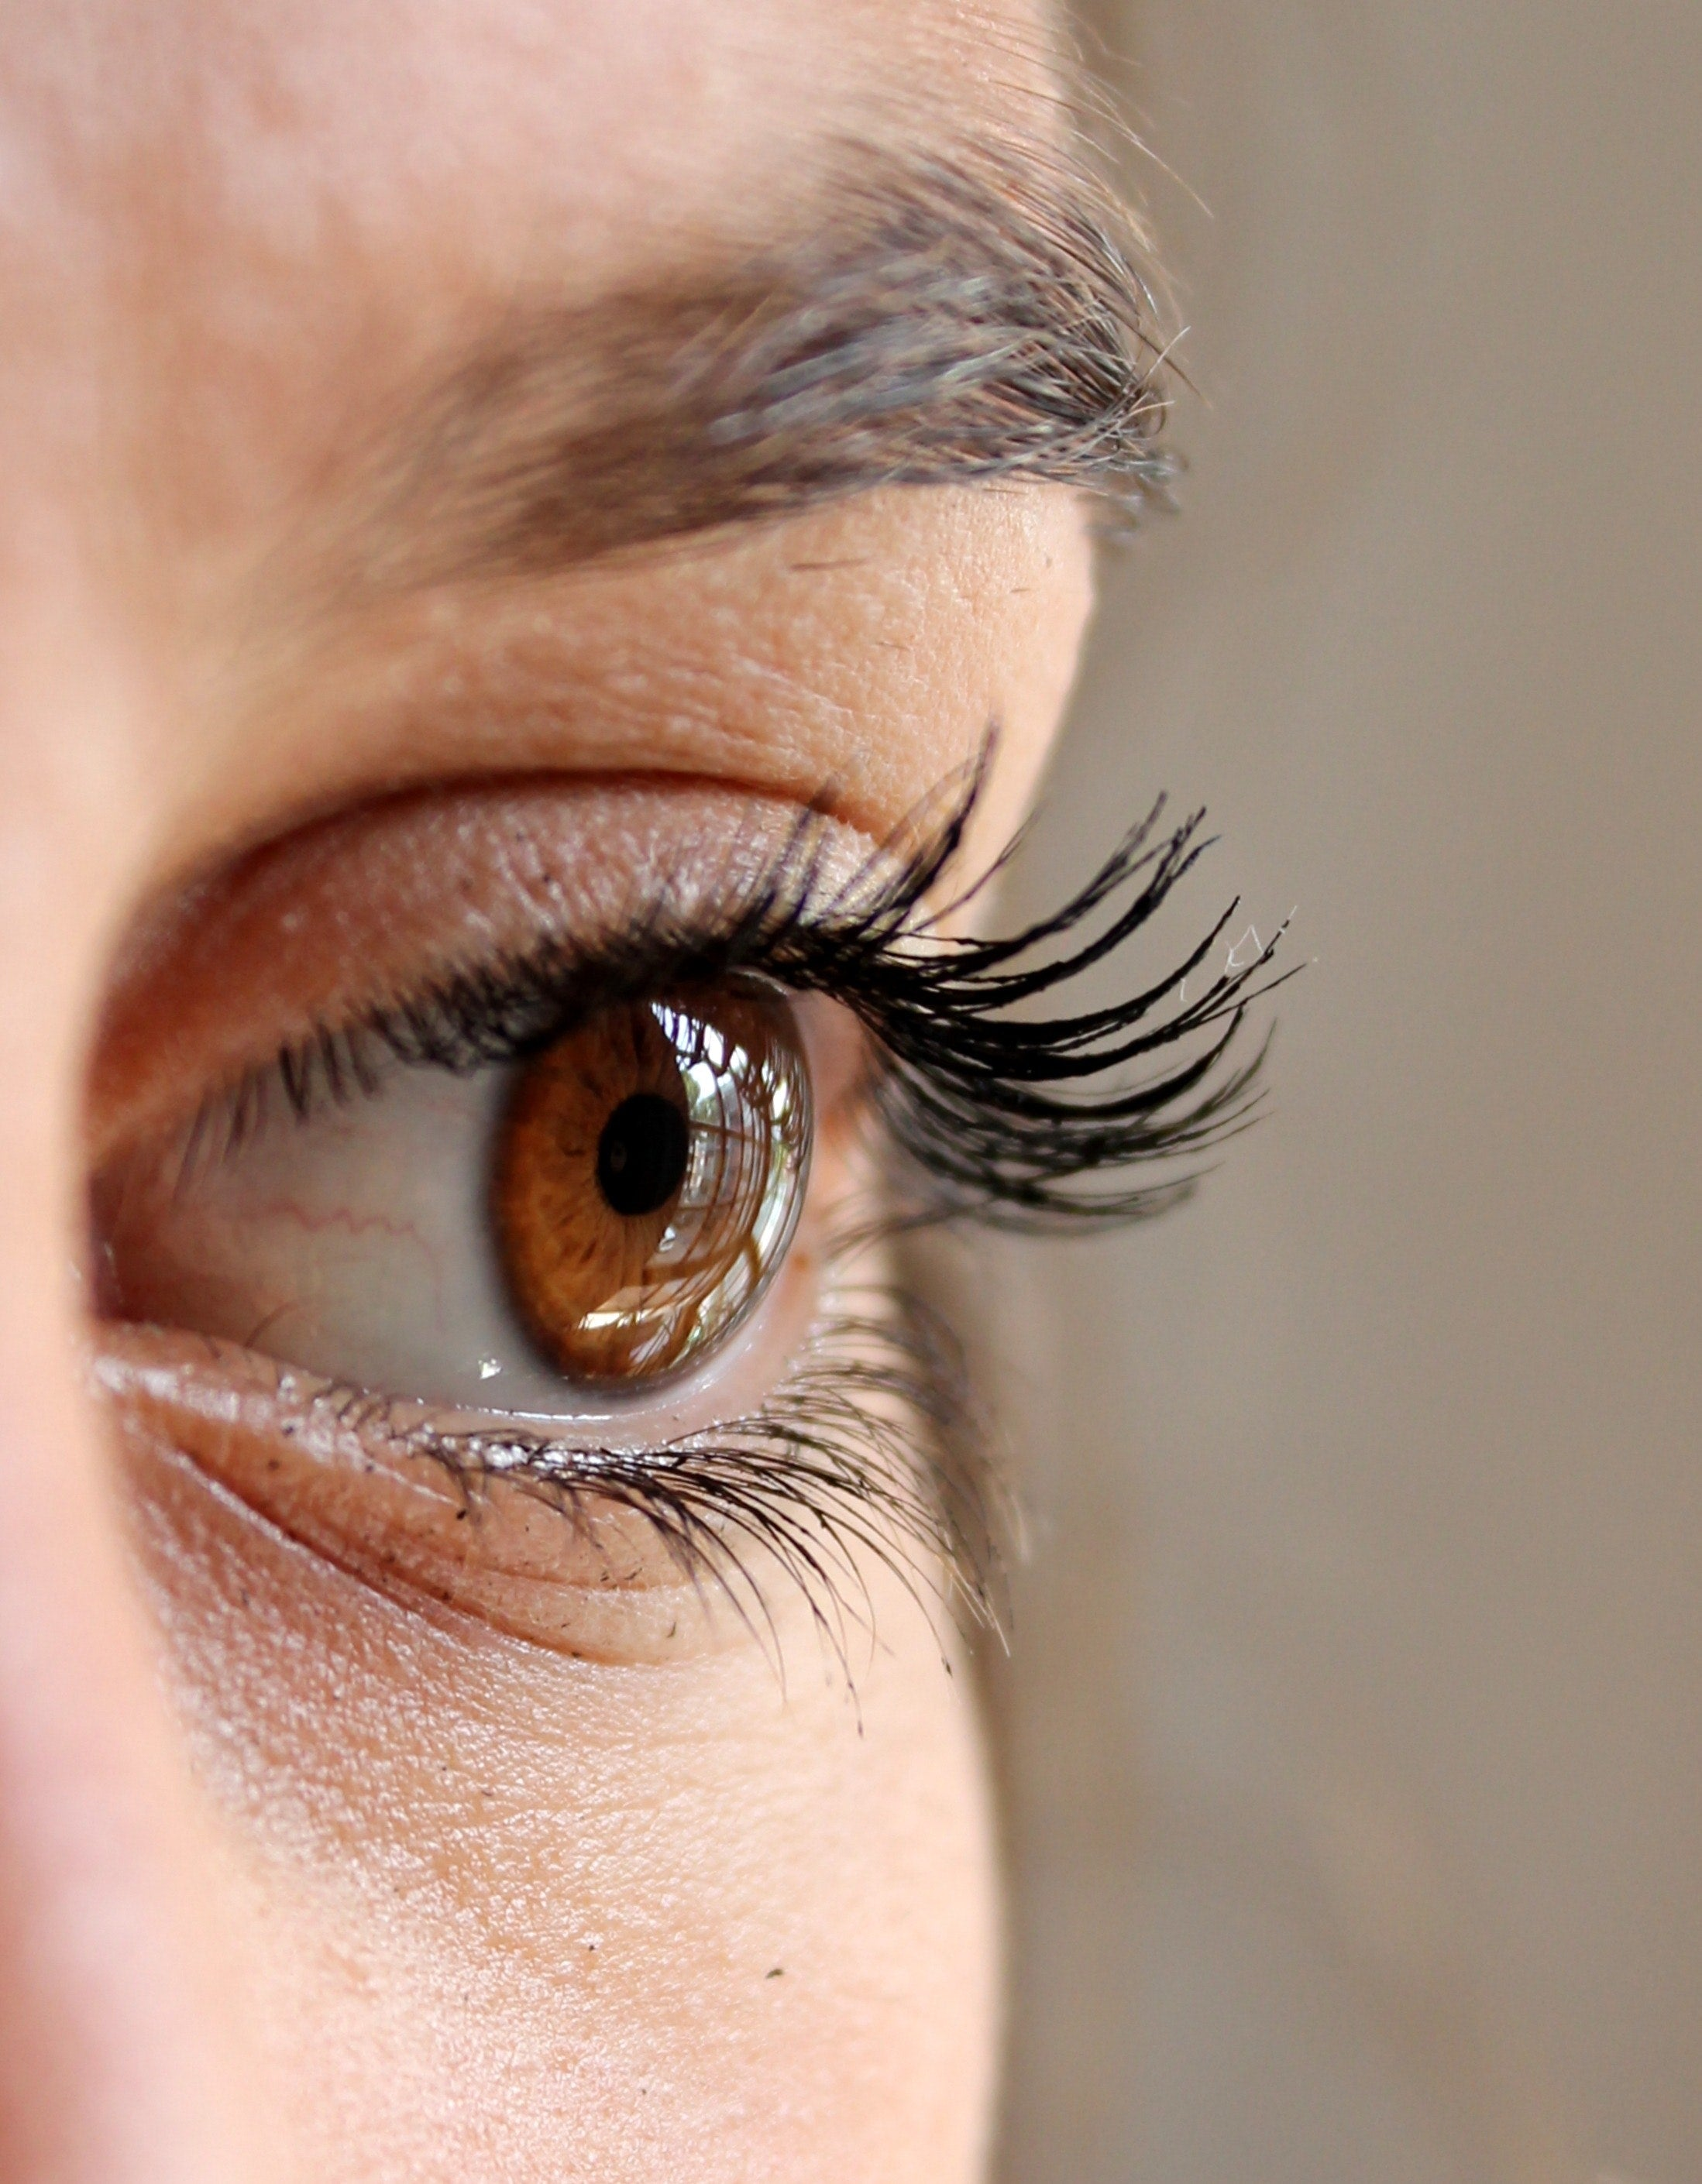 Oasys Tears reduce inflammation in your Eyes